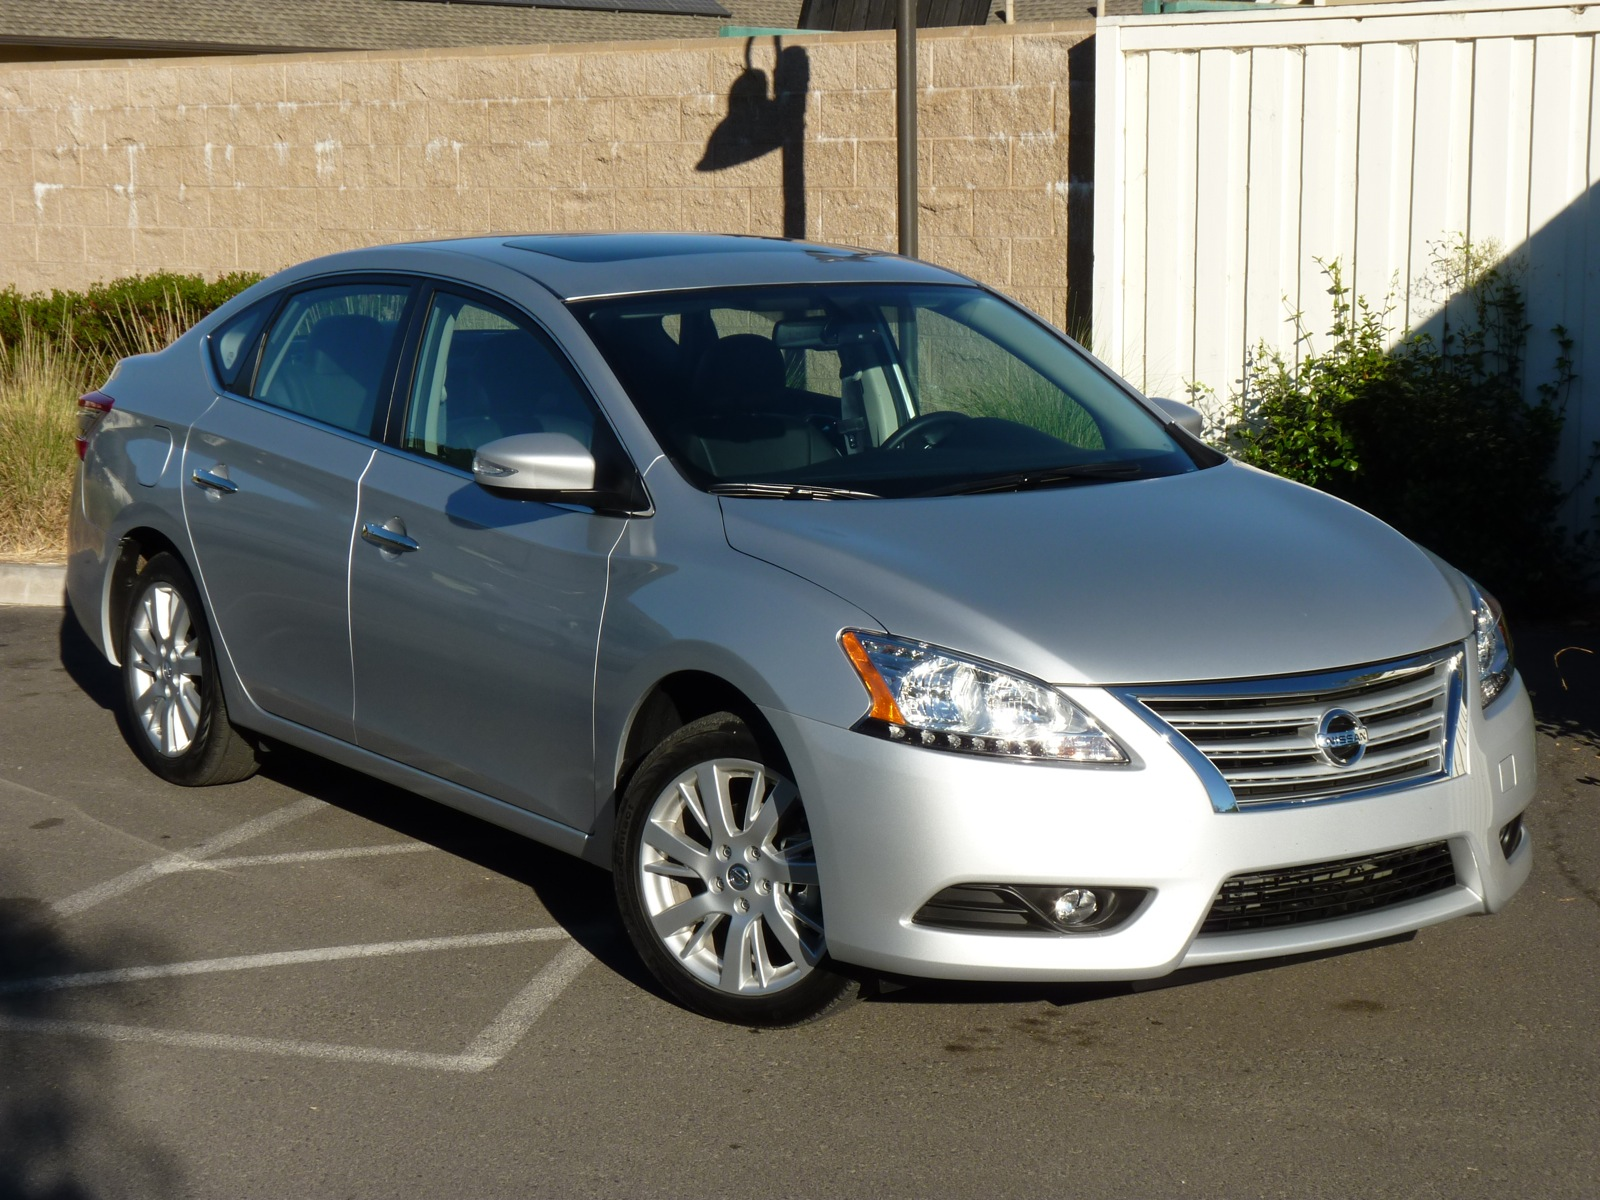 2013 Nissan Sentra Details Reviews Gas Mileage